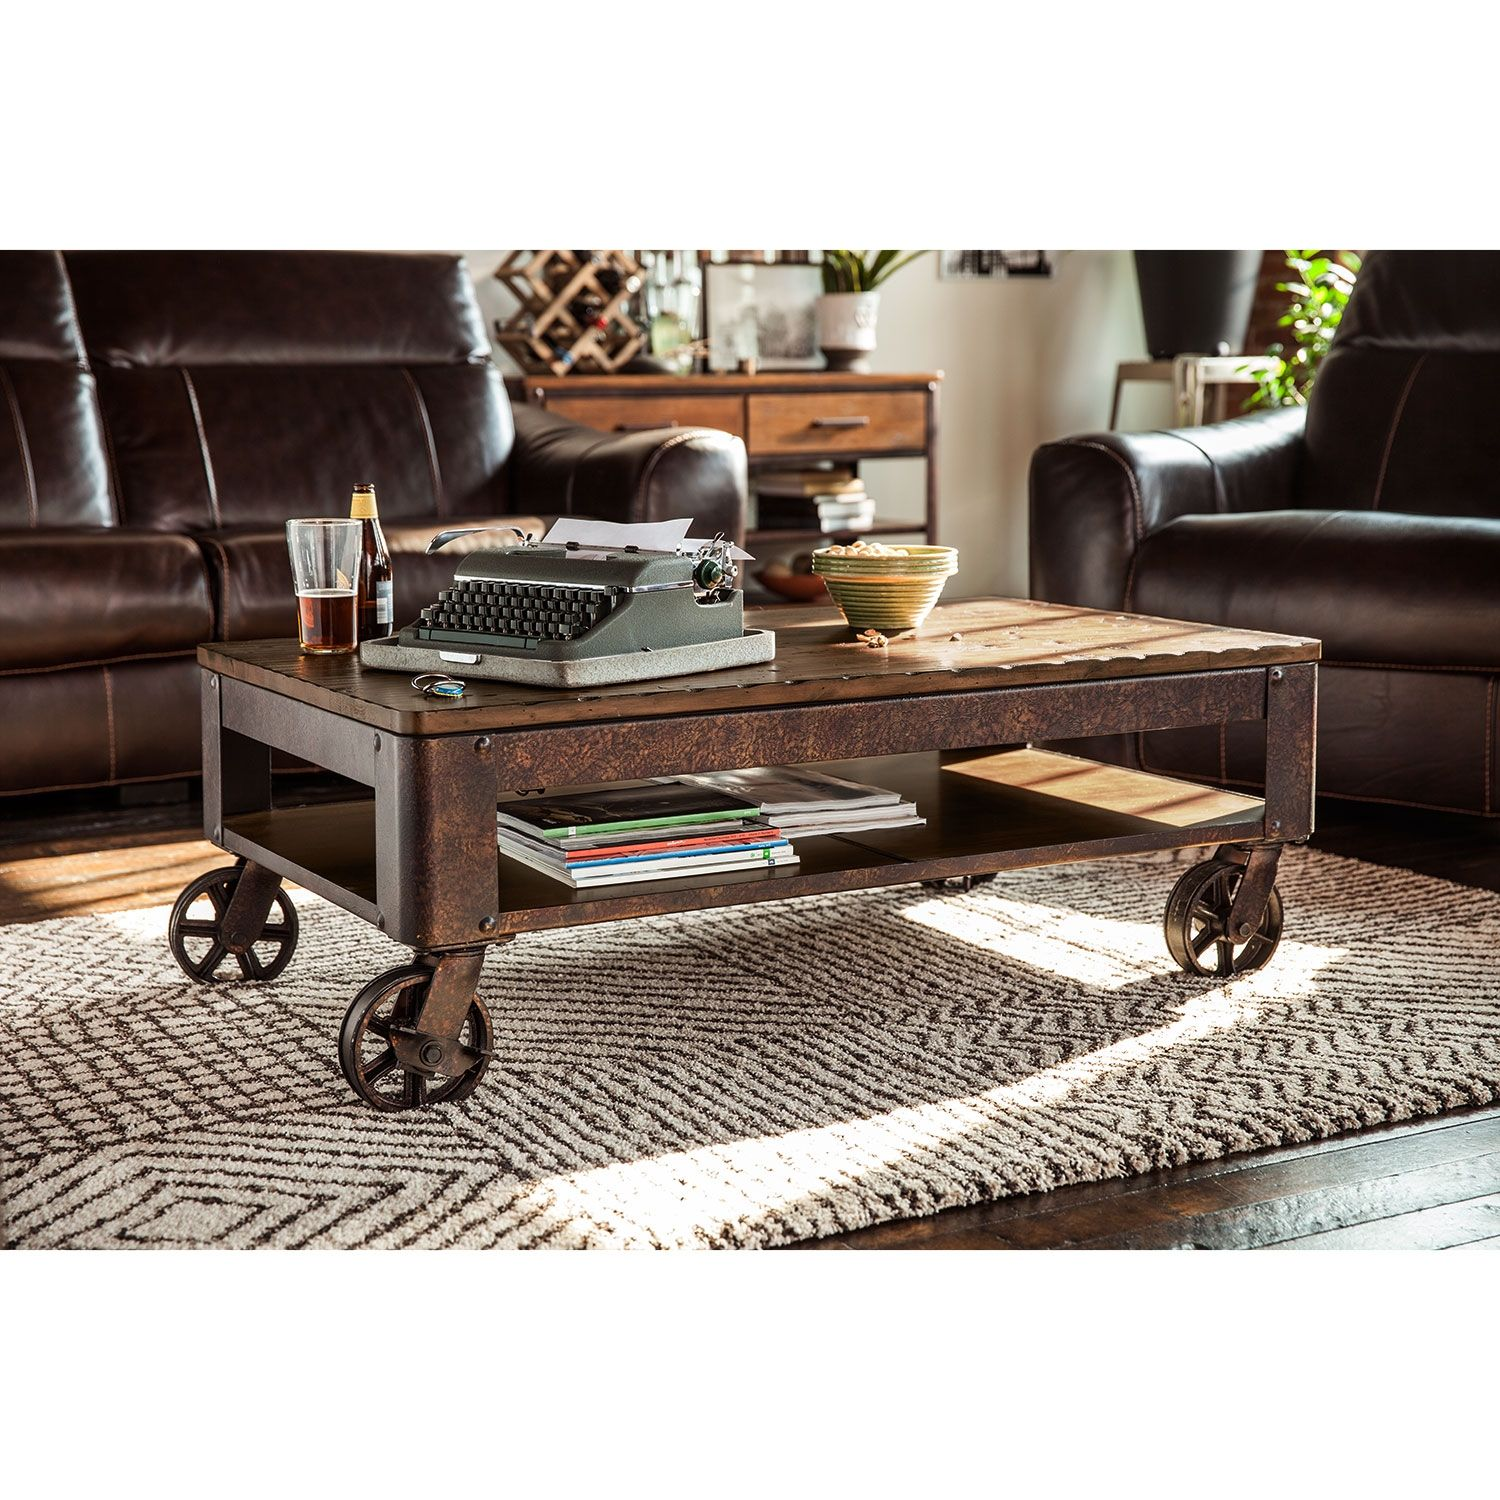 Shortline Lift Top Cocktail Table Coffee Table Asian Home Decor Home Decor [ 1500 x 1500 Pixel ]